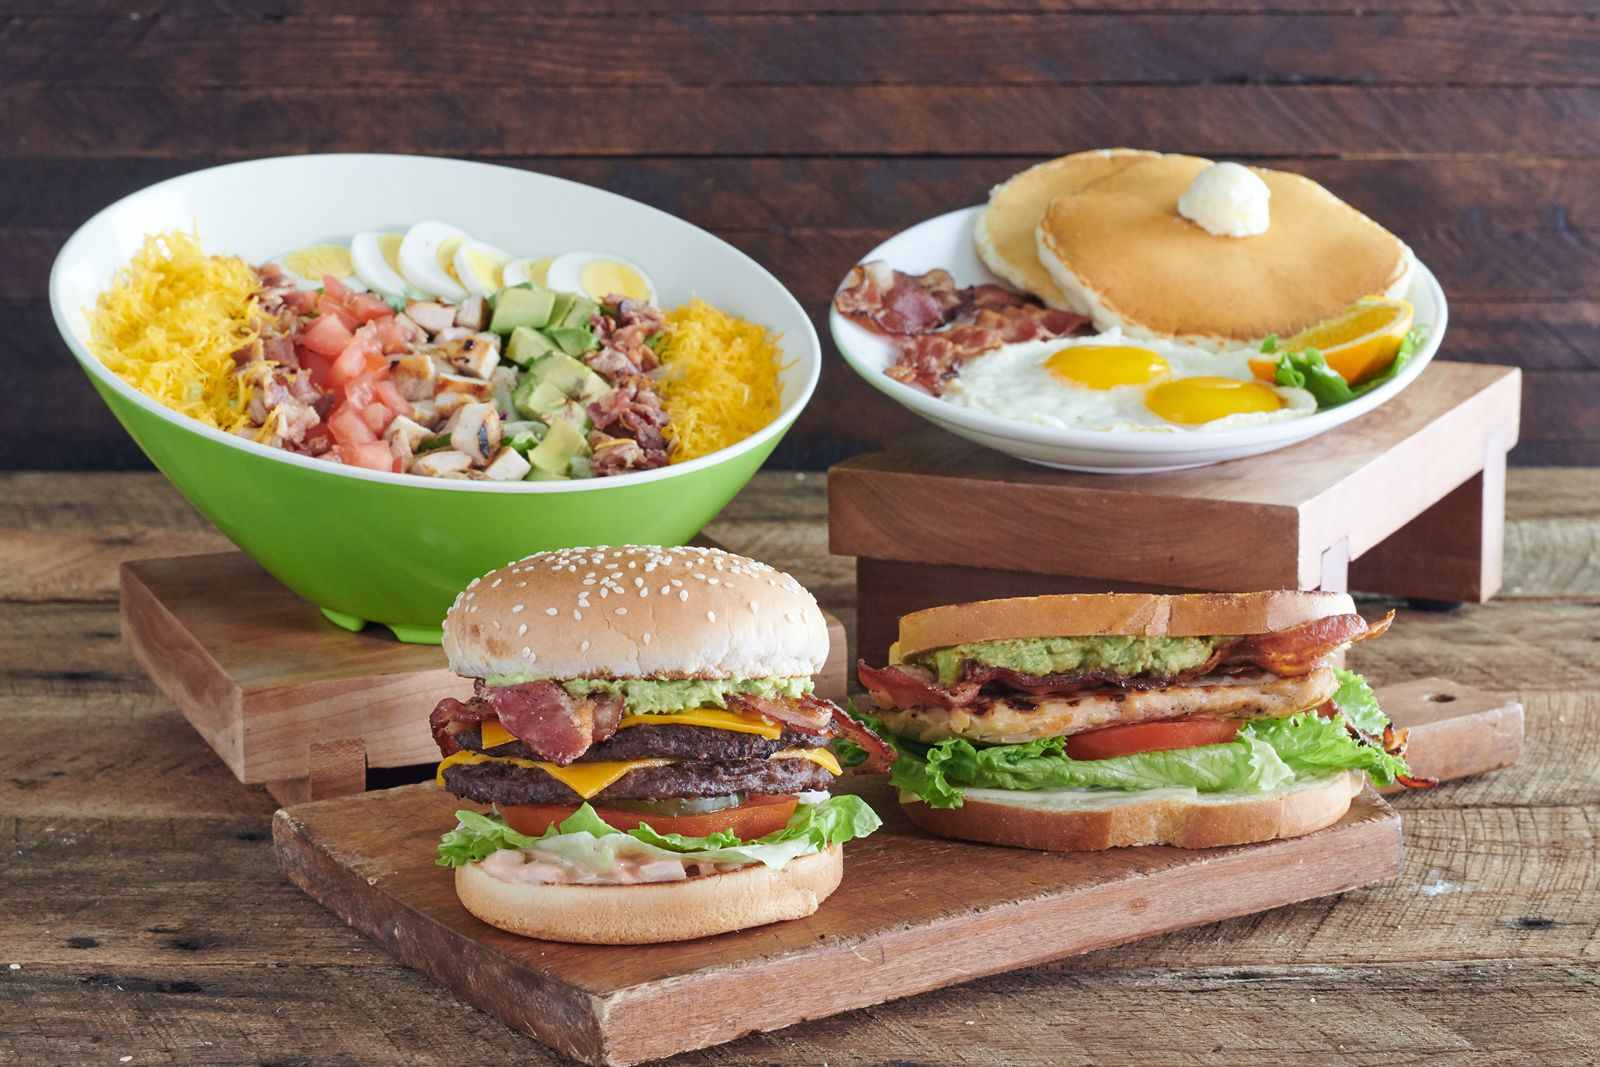 Farmer Boys will celebrate the grand opening of its first Arizona location with an all-day fundraiser for Highland High School on Saturday, September 25th